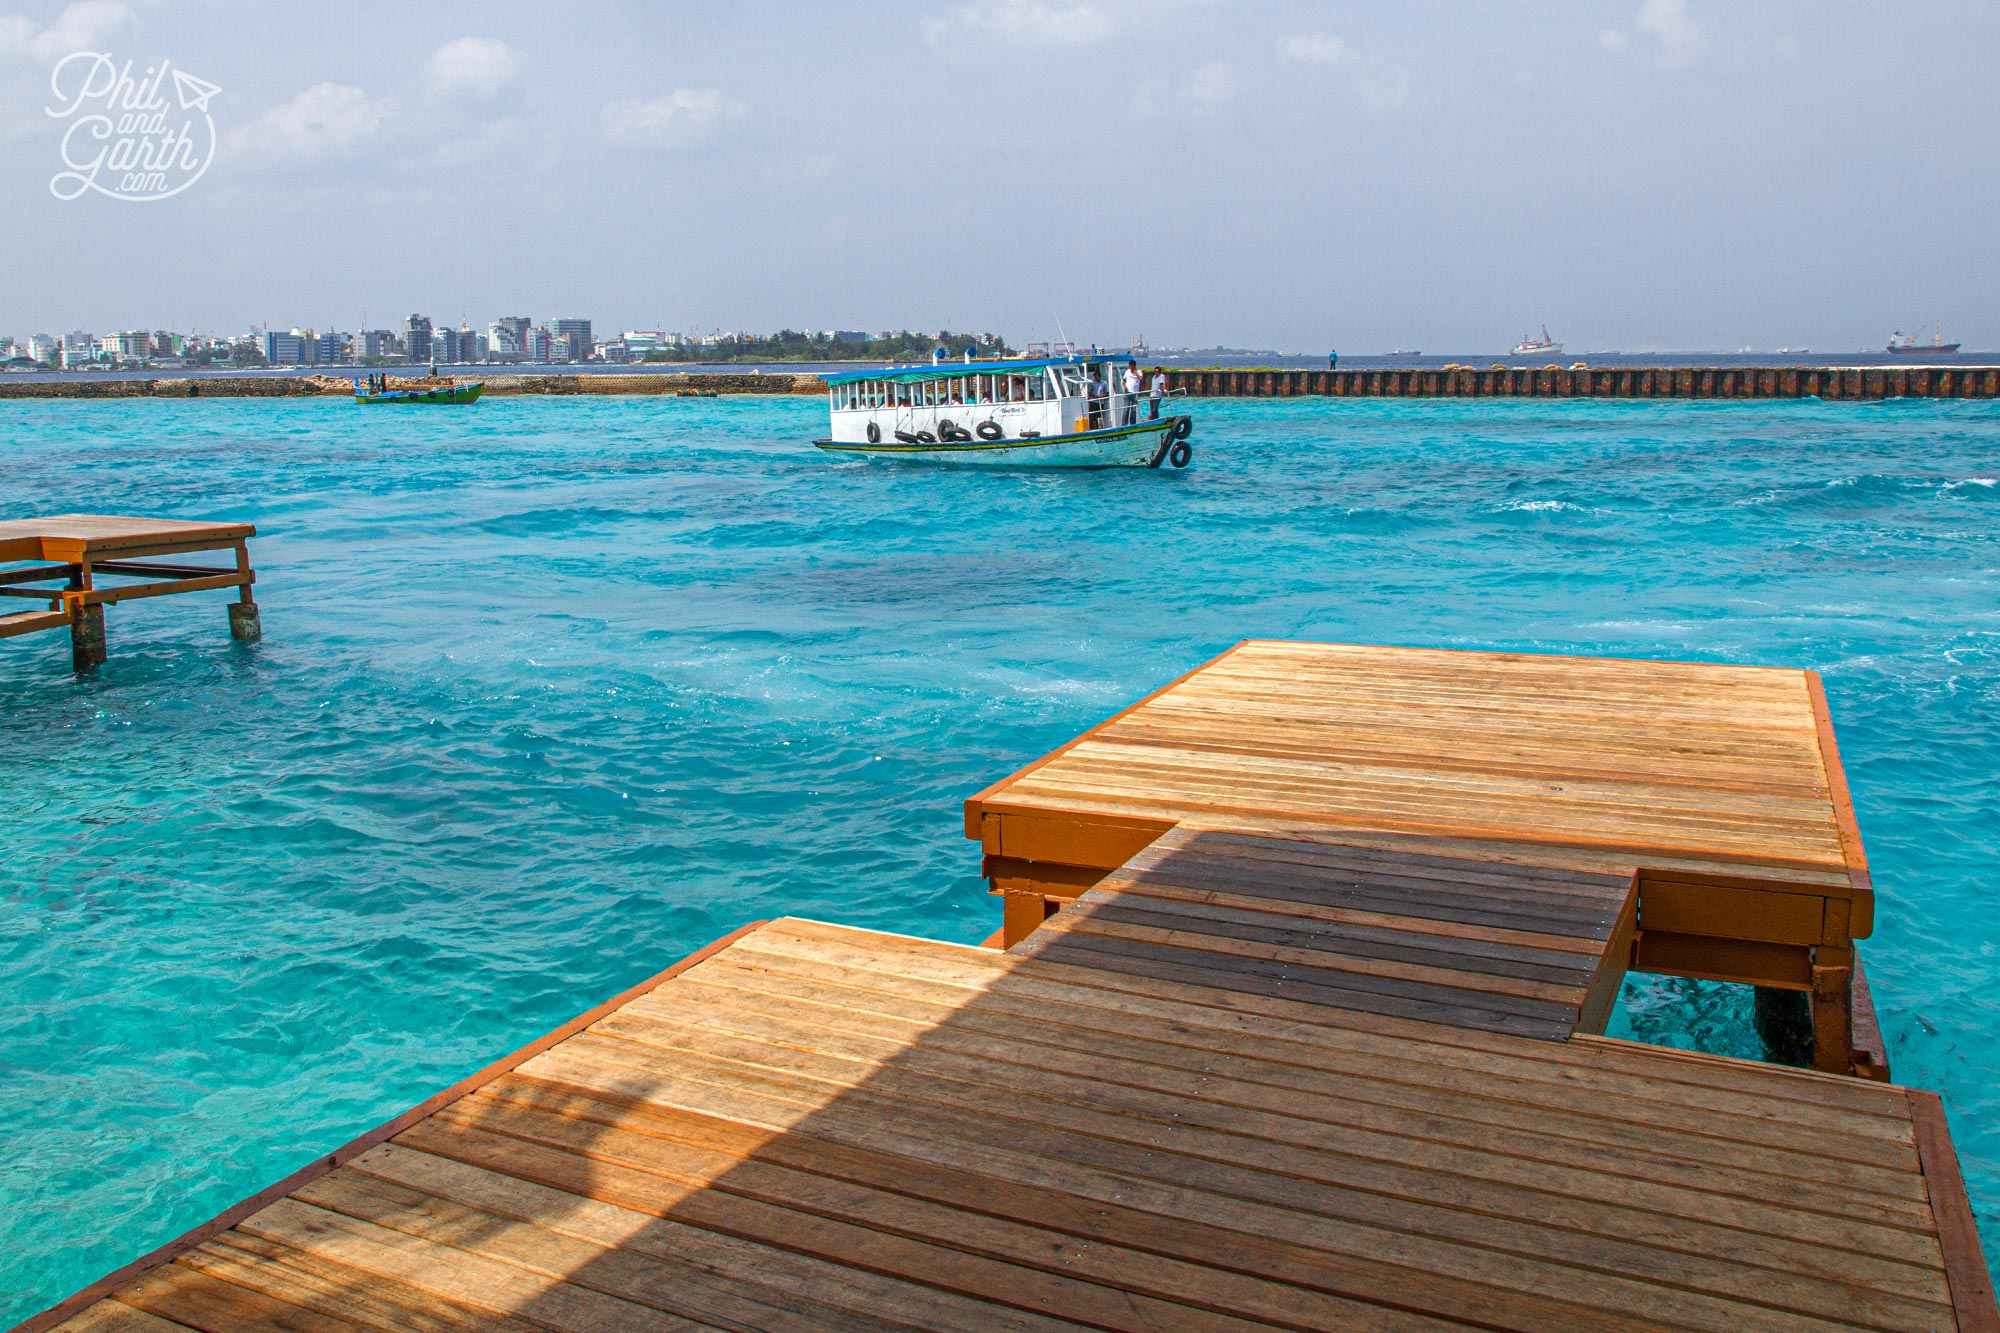 Waiting for our speedboat transfer at Malé International Airport, just look at that turquoise coloured water!